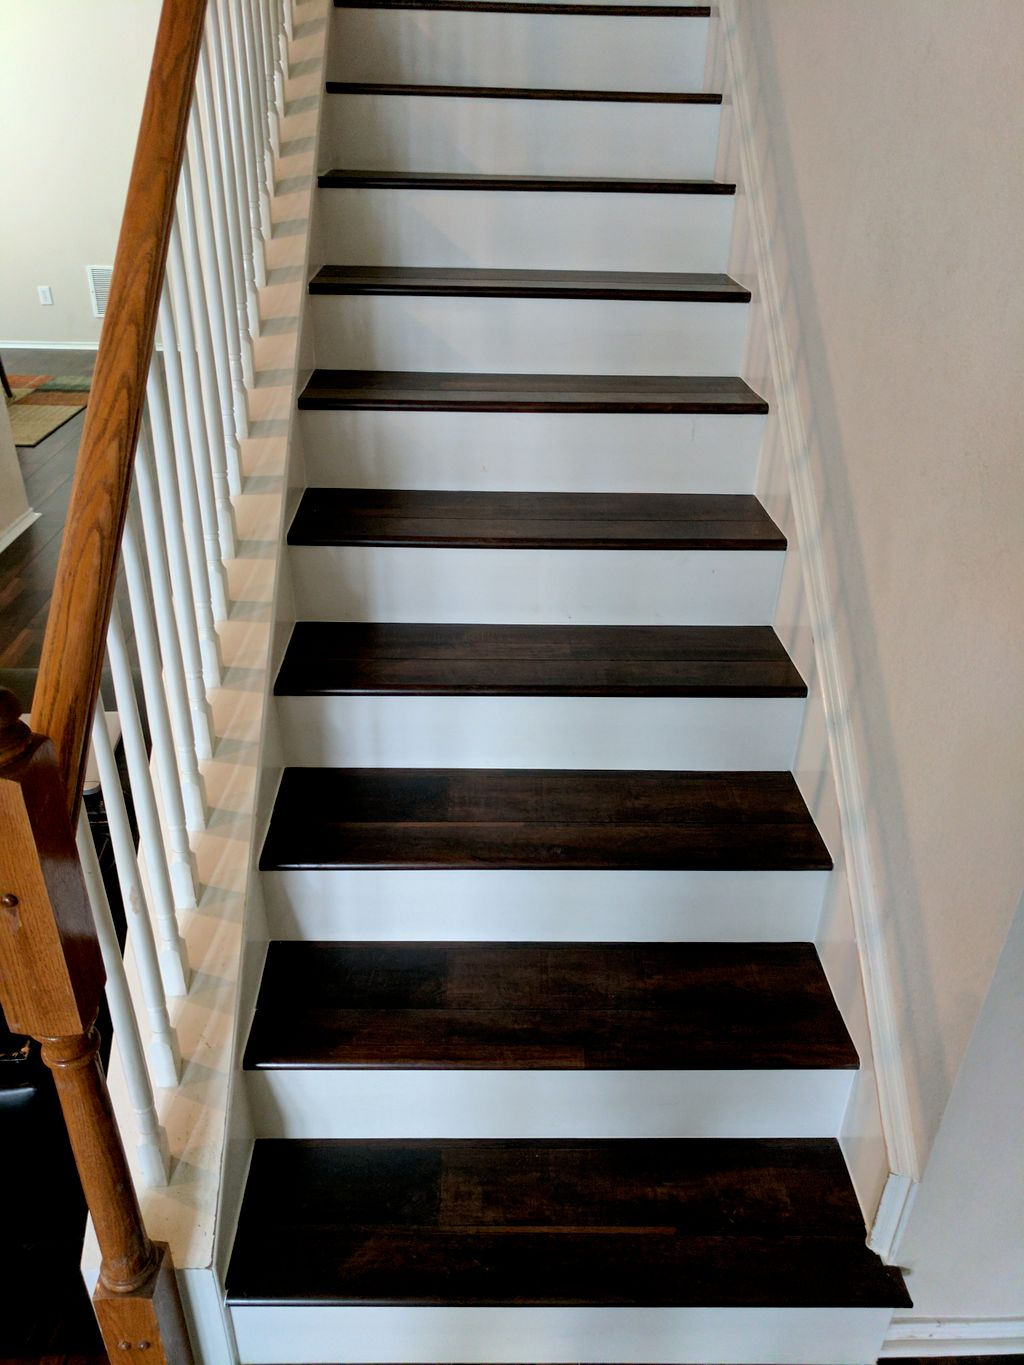 New Wood for Stairs